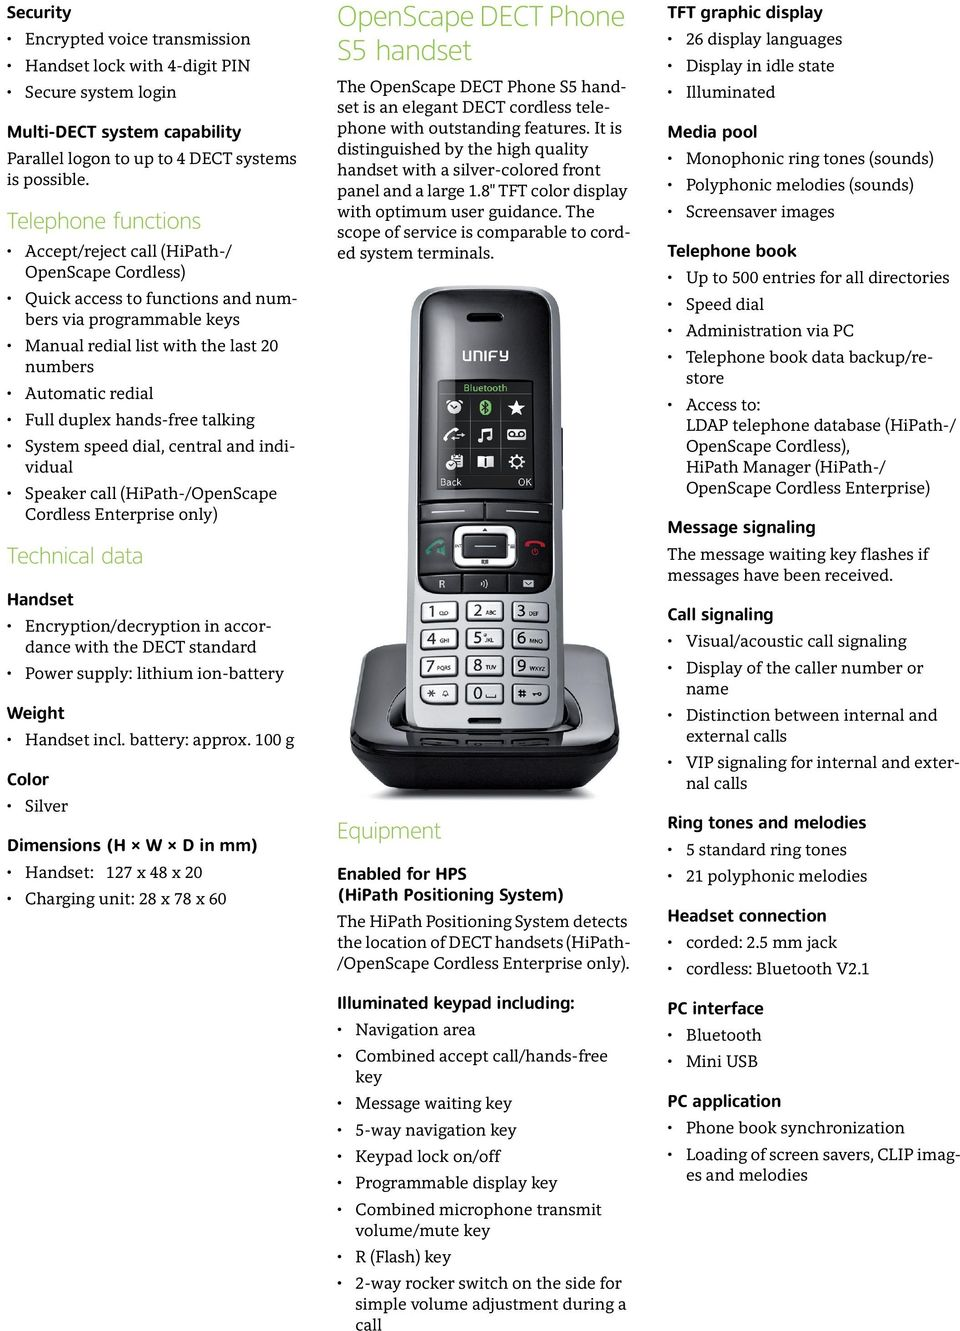 duplex hands-free talking System speed dial, central and individual Speaker call (HiPath-/OpenScape Cordless Enterprise only) Technical data Handset Encryption/decryption in accordance with the DECT